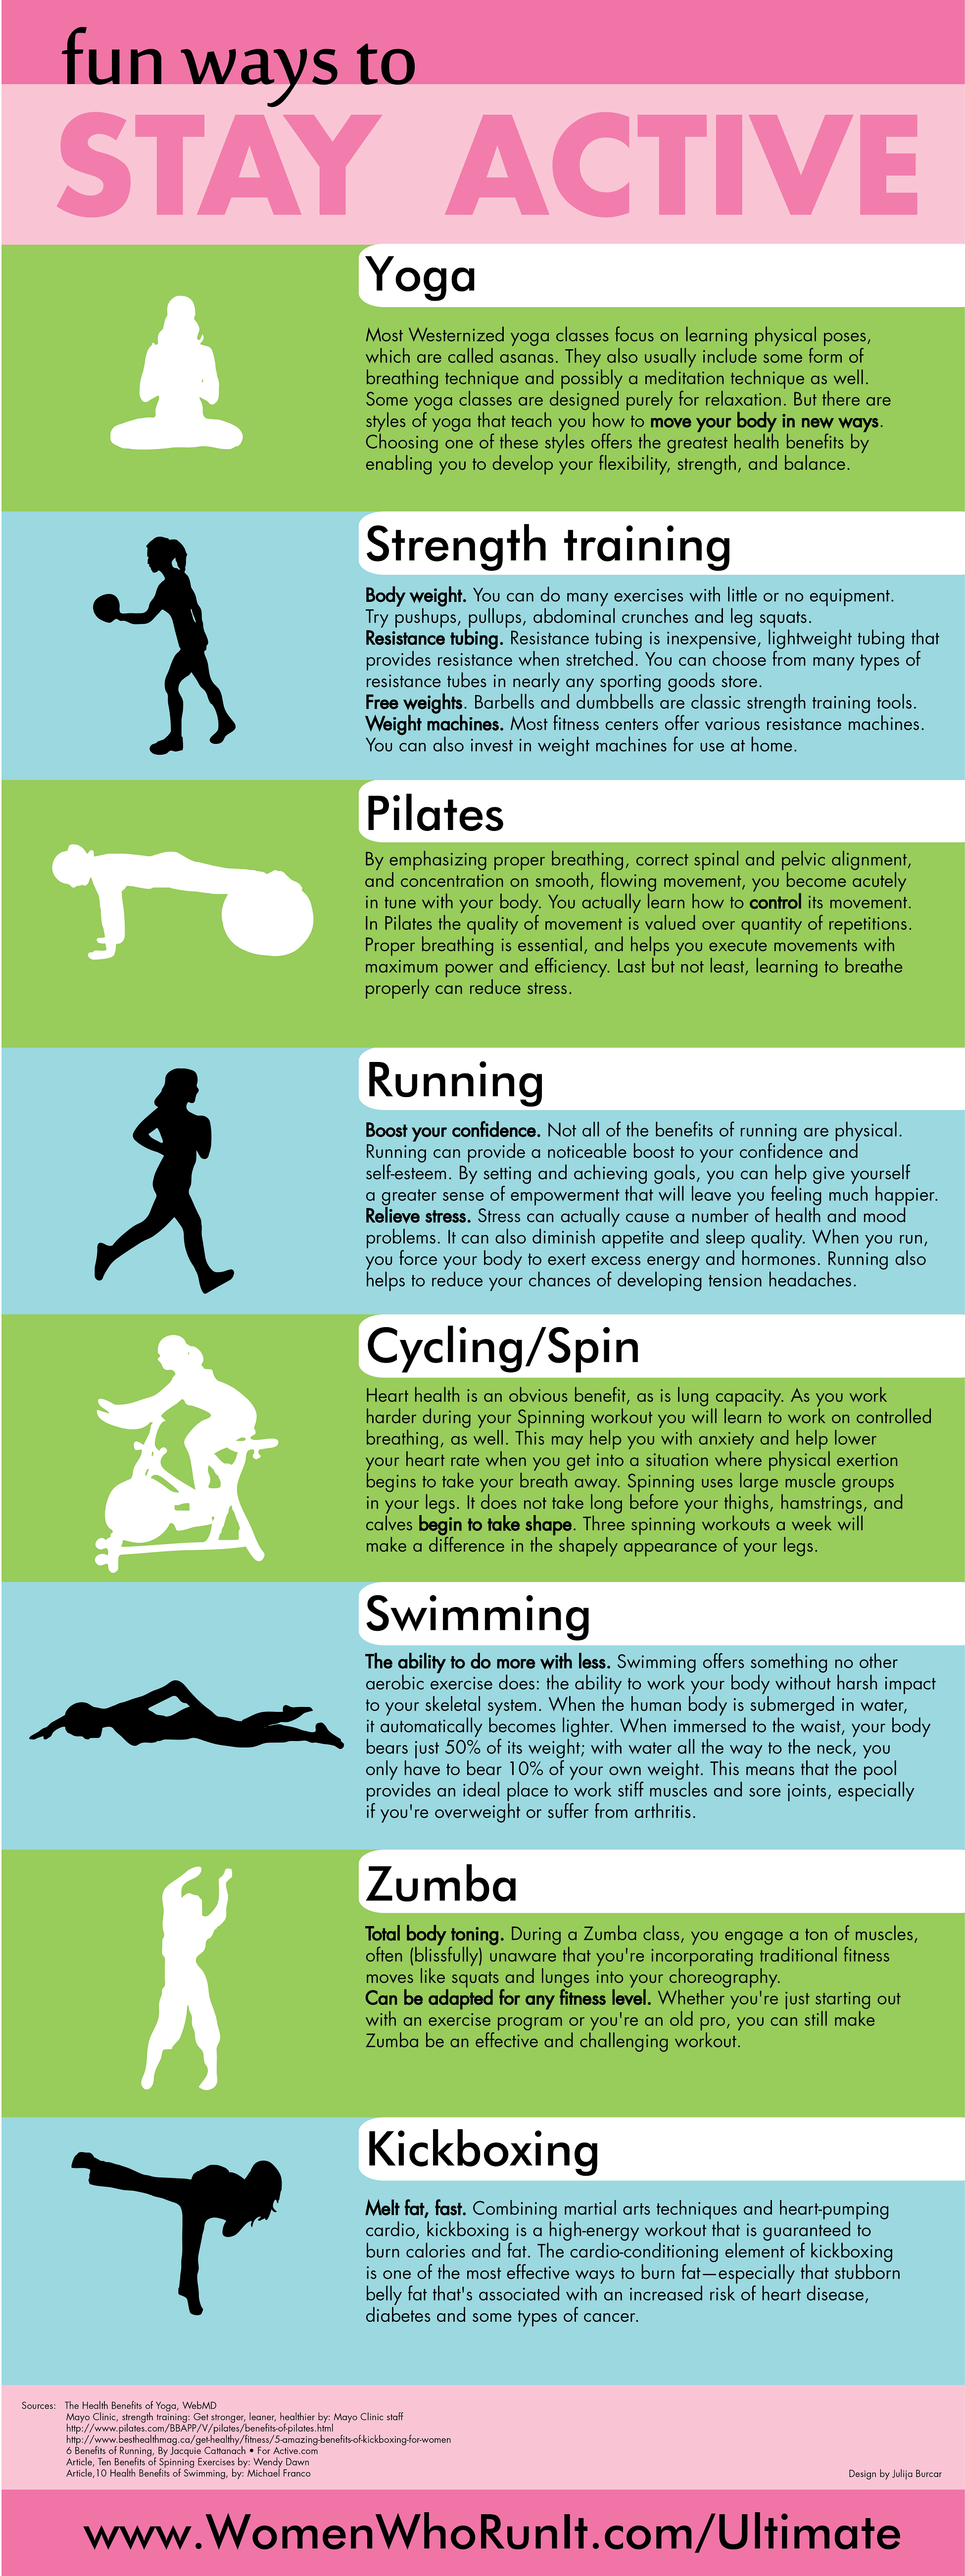 Fun Ways To Stay Active - PNG